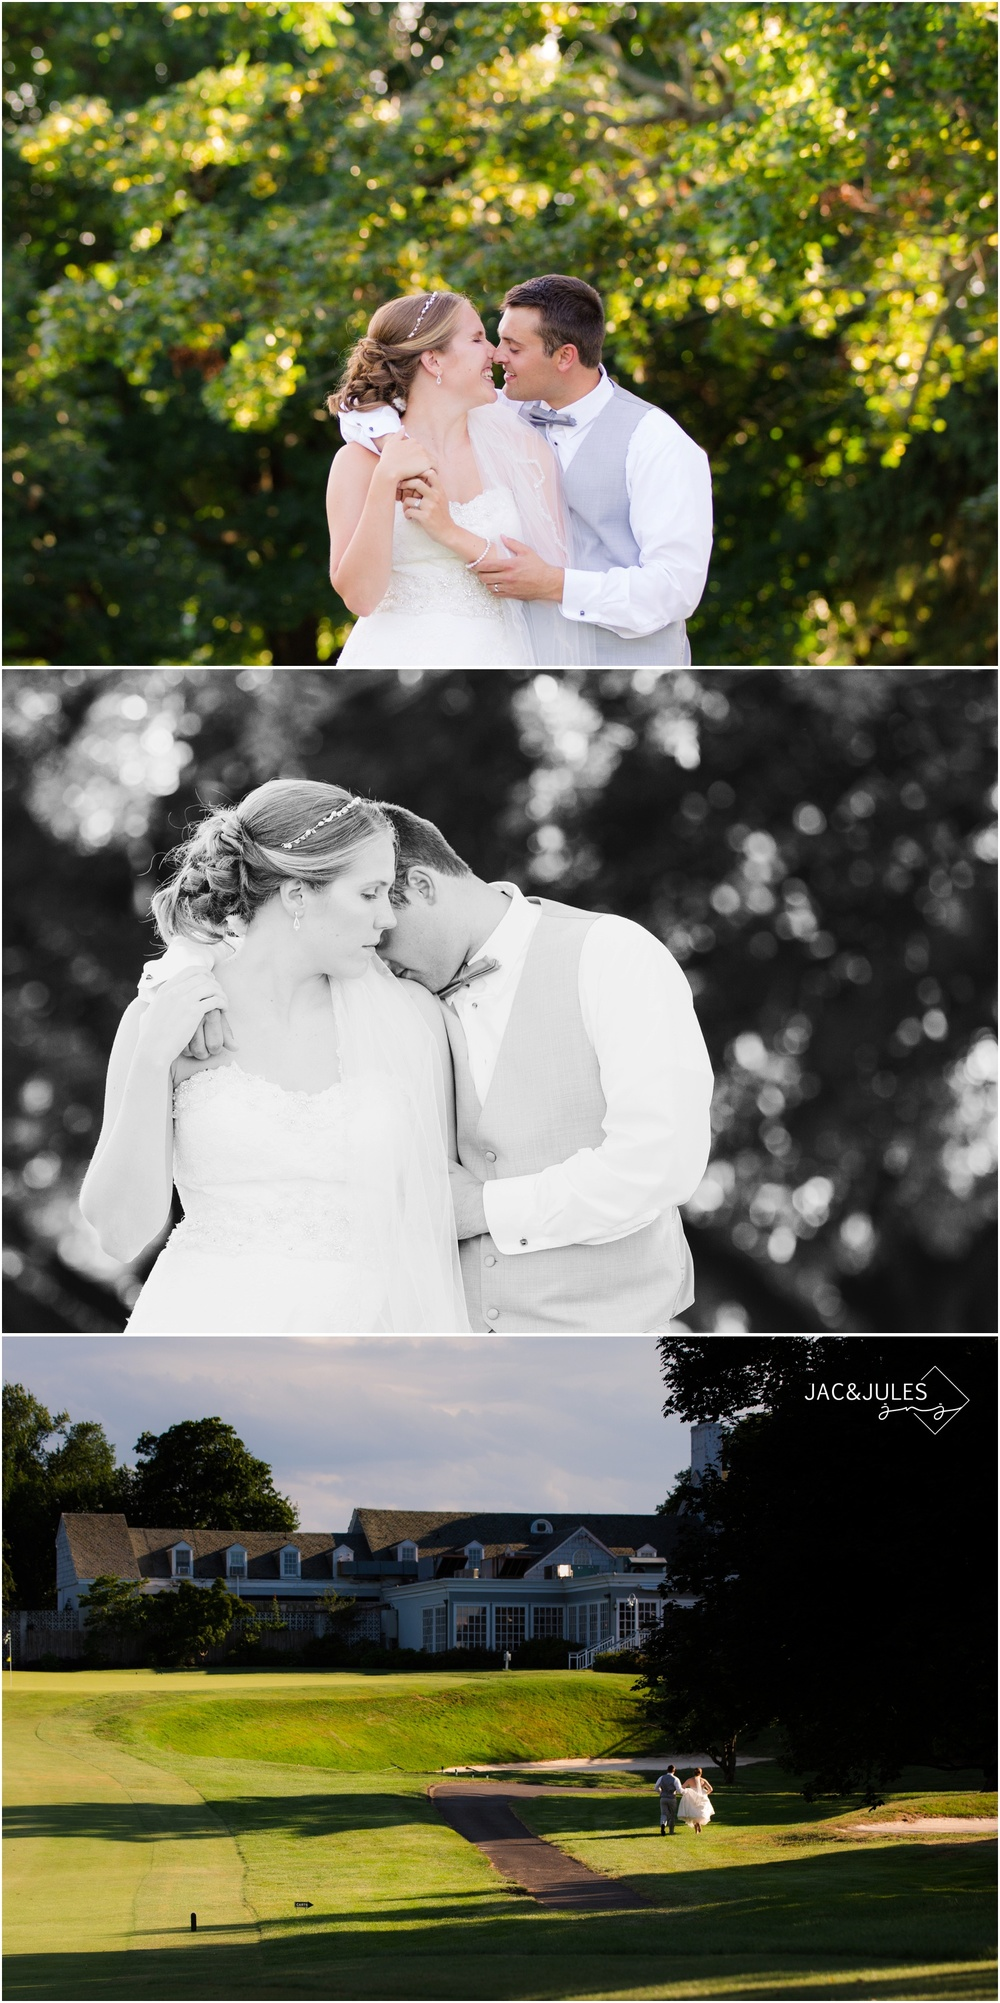 bride and groom photos on the golf course at forsgate country club in Monroe, NJ.